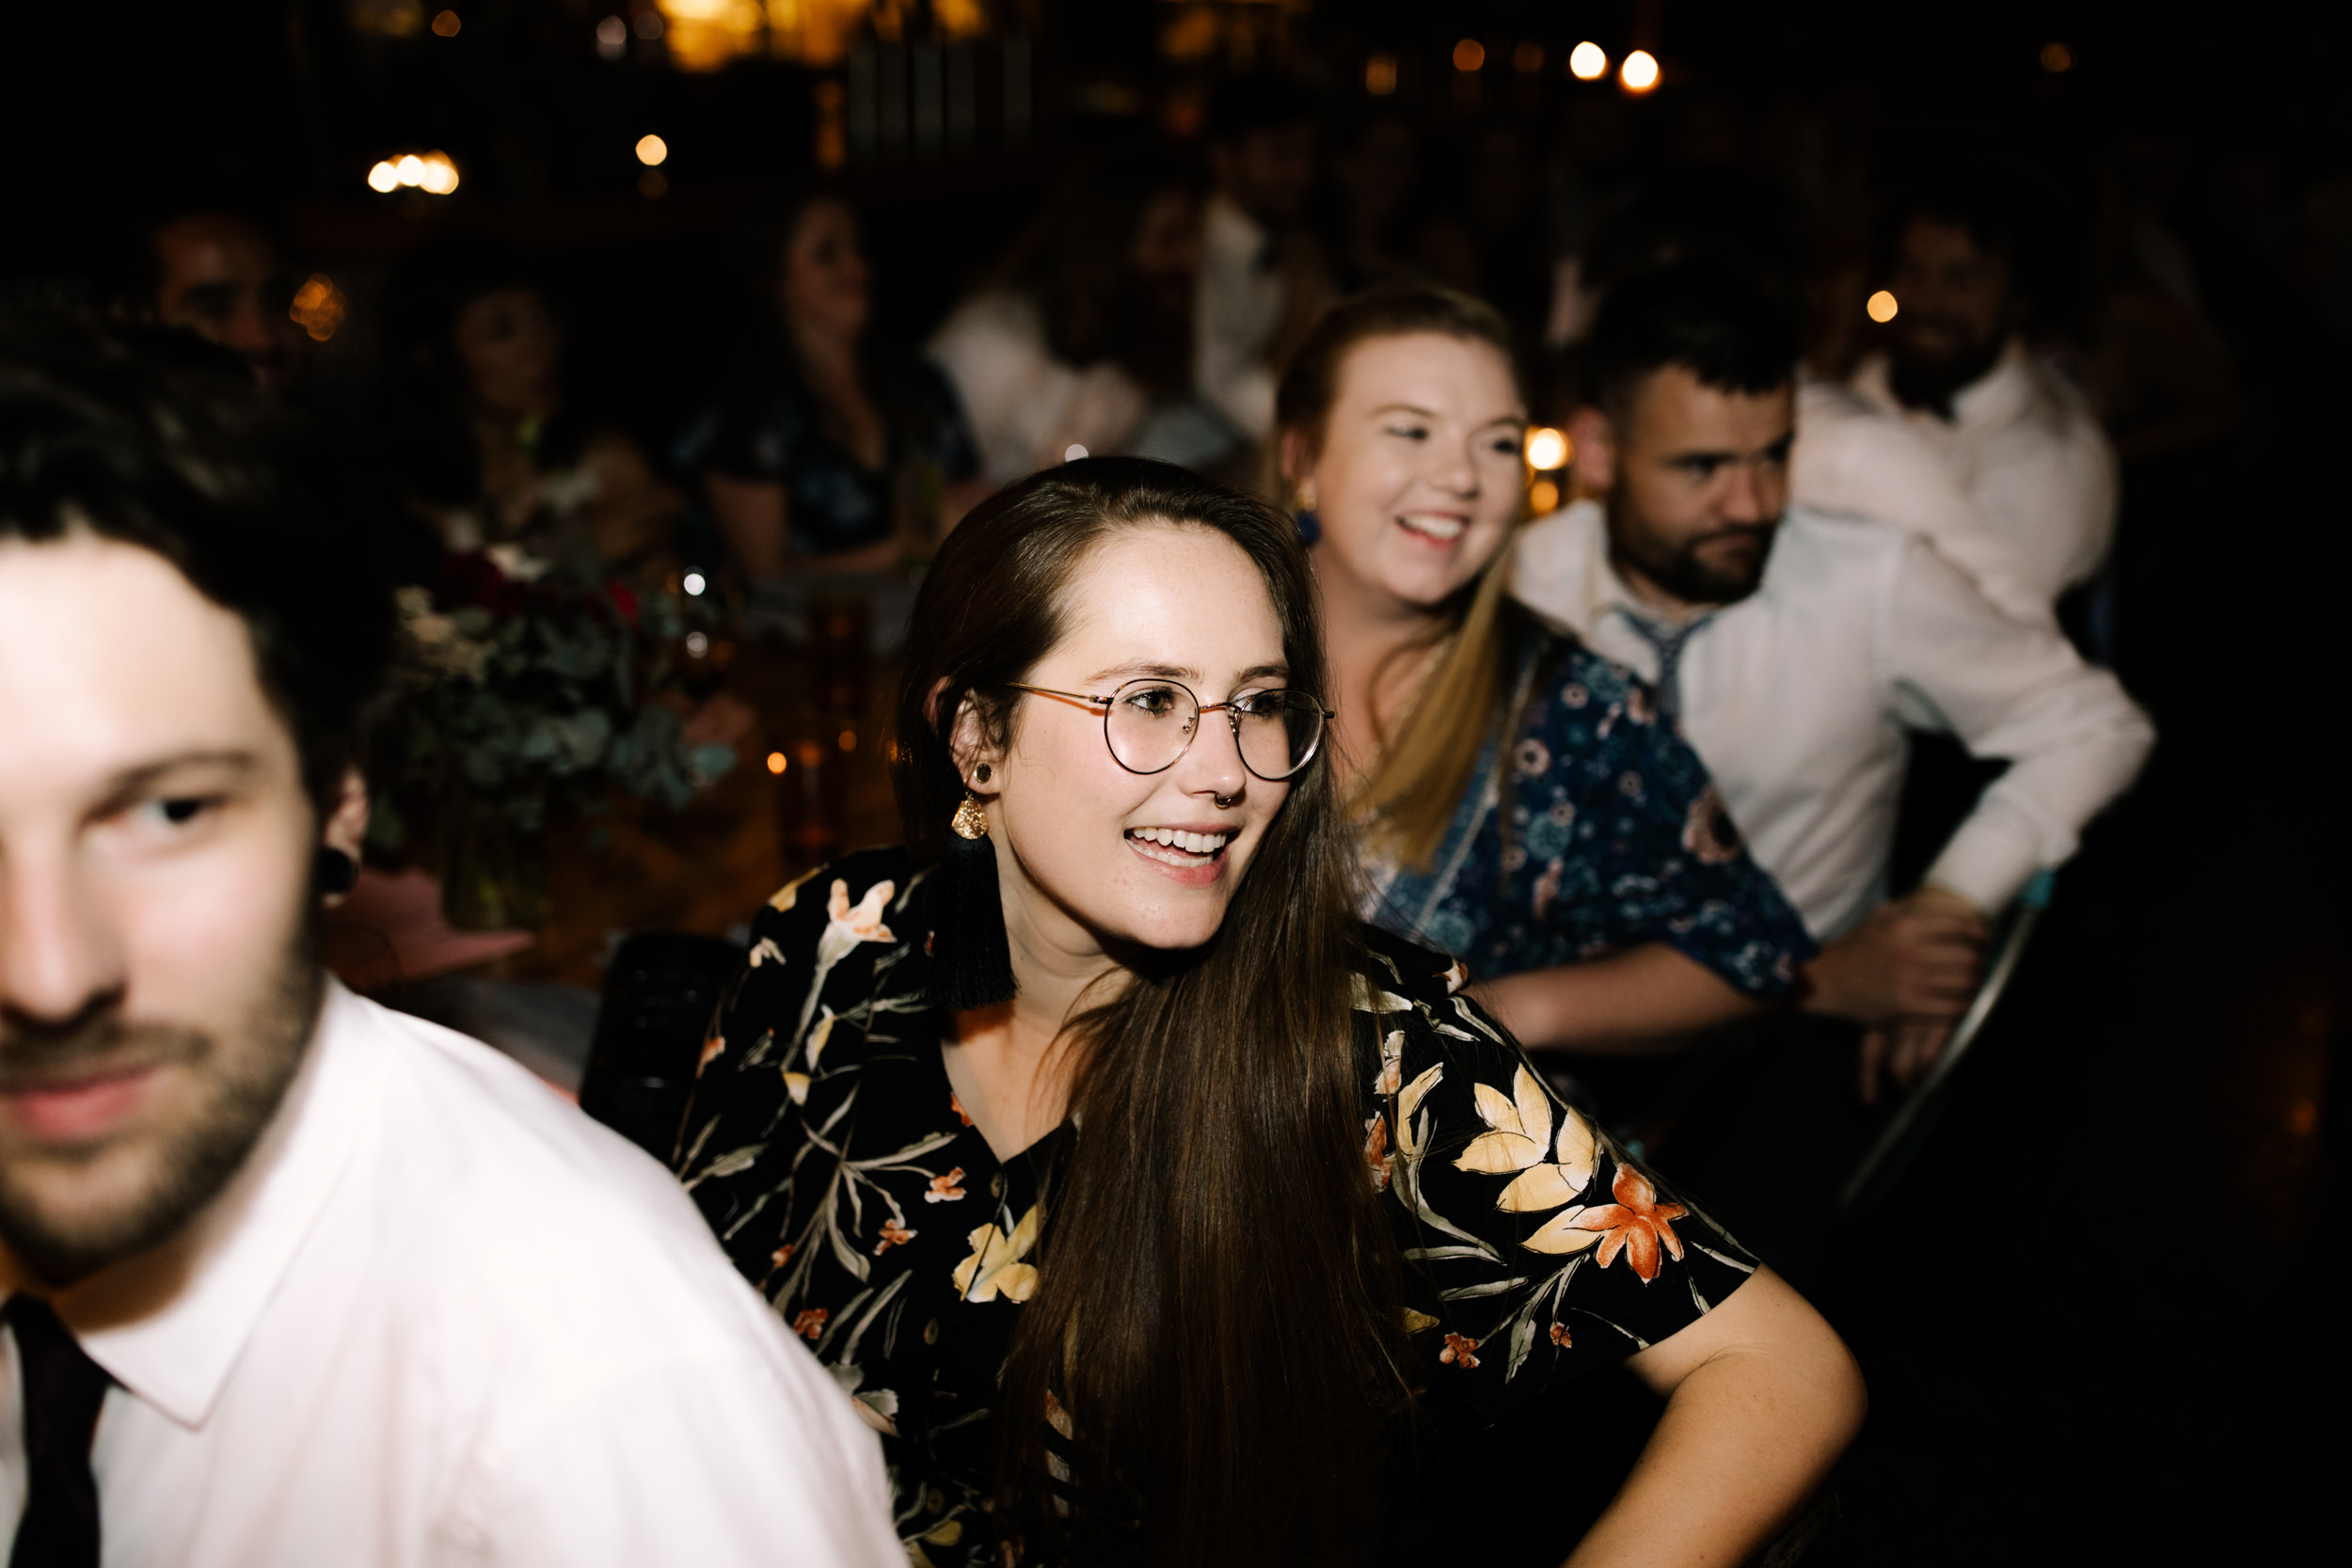 I_Got_You_Babe_Weddings_Emily_Matt_Rupert_Glasshaus_Melbourne0204.JPG